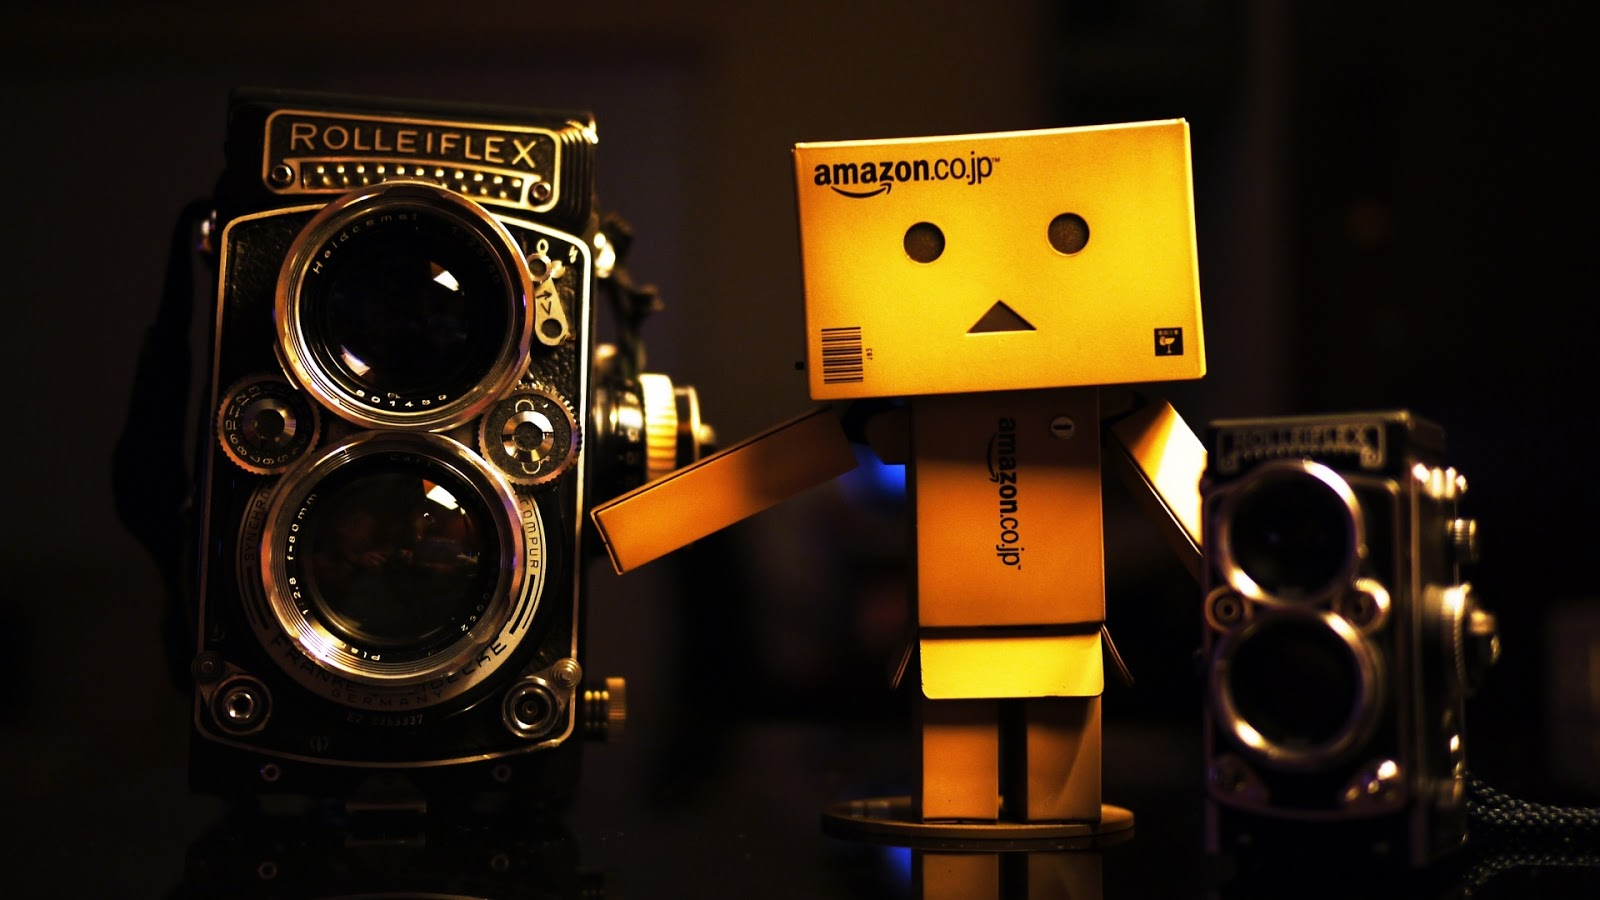 Danbo And Rolleiflex